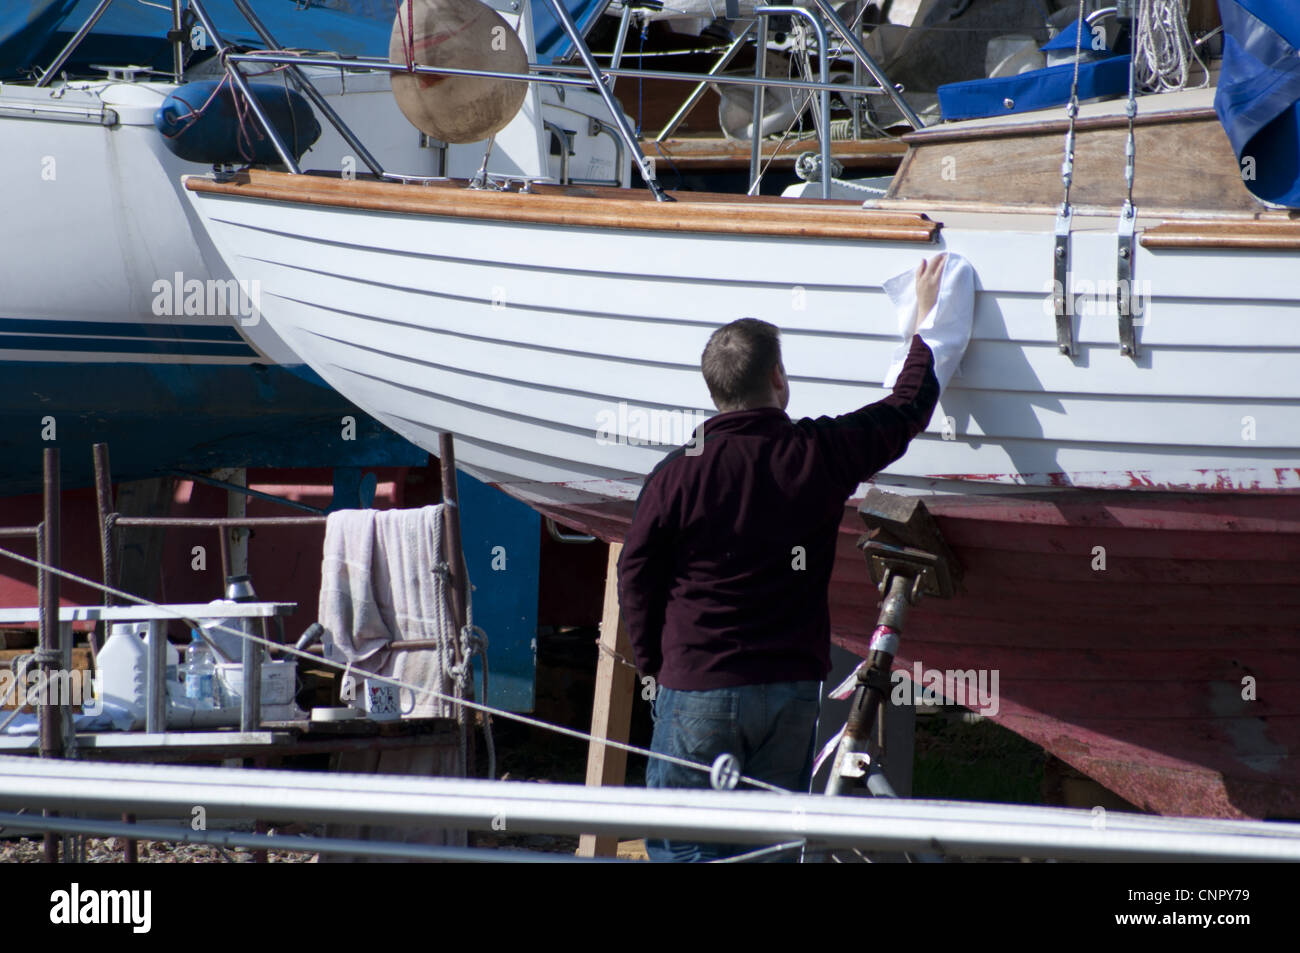 Man cleaning sailing boat in boatyard - Stock Image